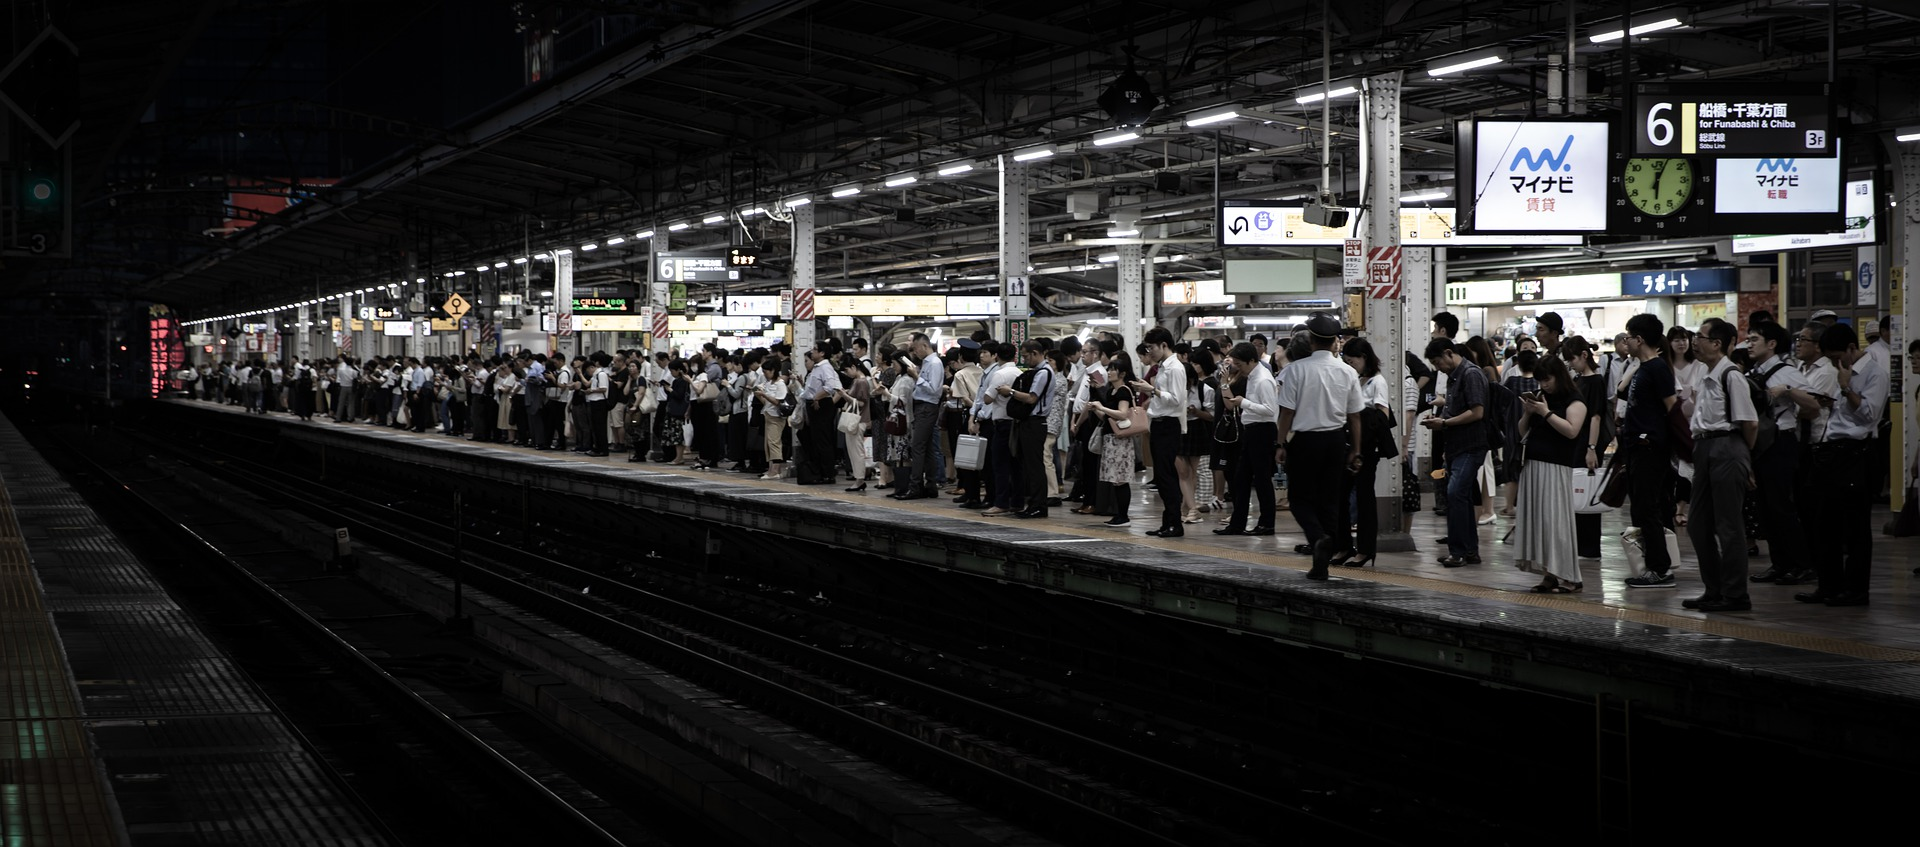 A Tokyo train platform with workers waiting to board a train.